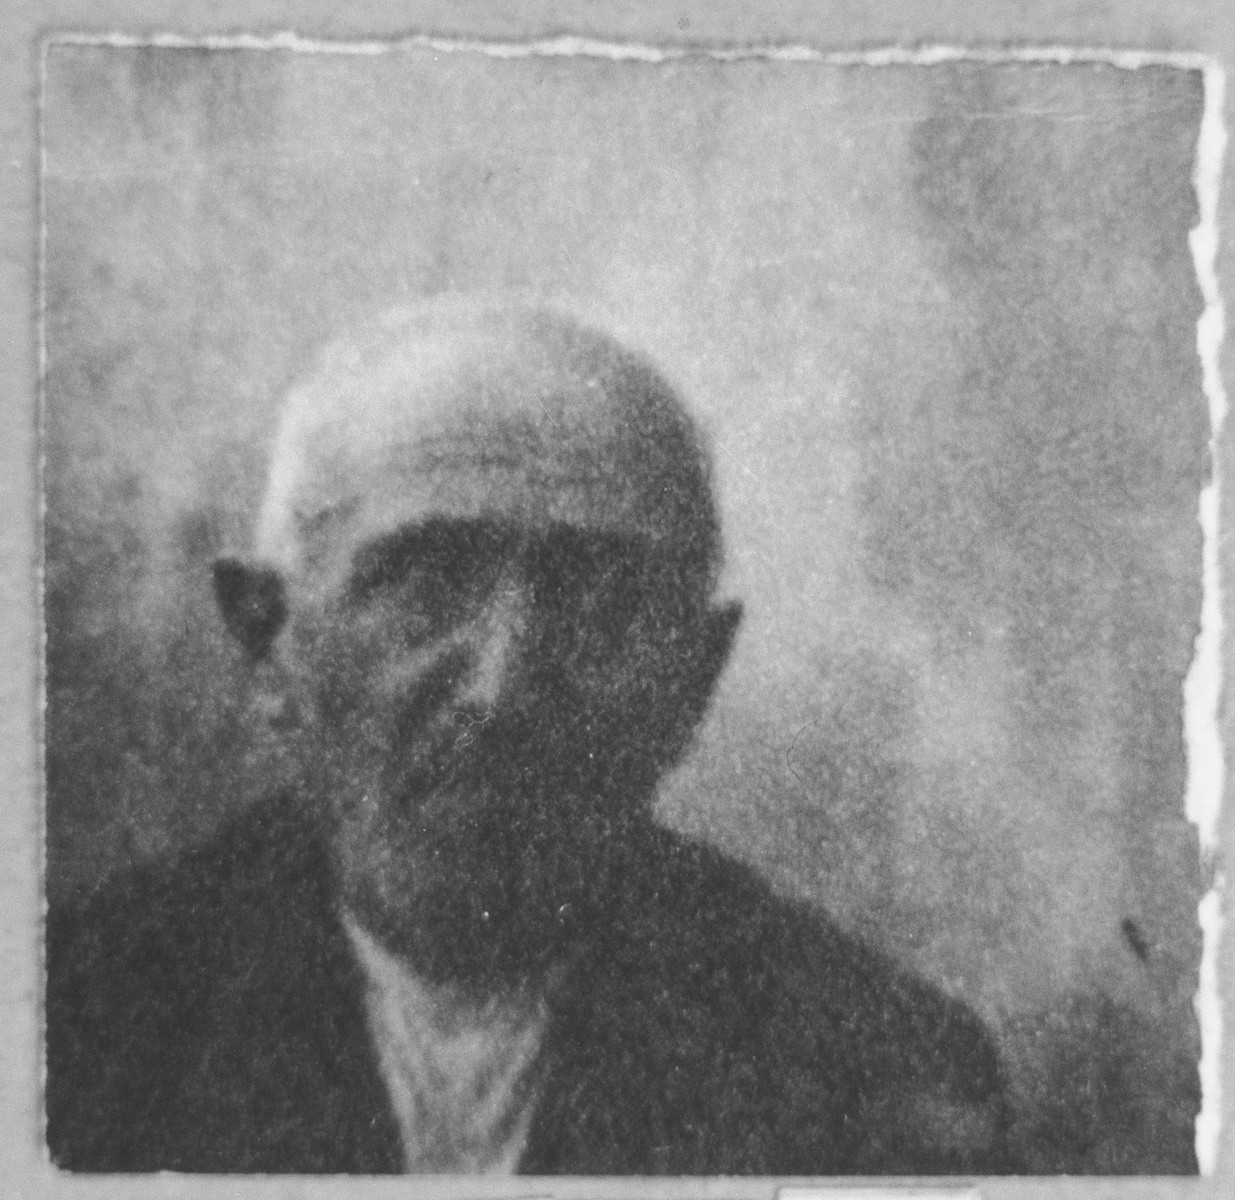 Portrait of Solomon Pesso.  He was a miller.  He lived at Dalmatinska 70 in Bitola.